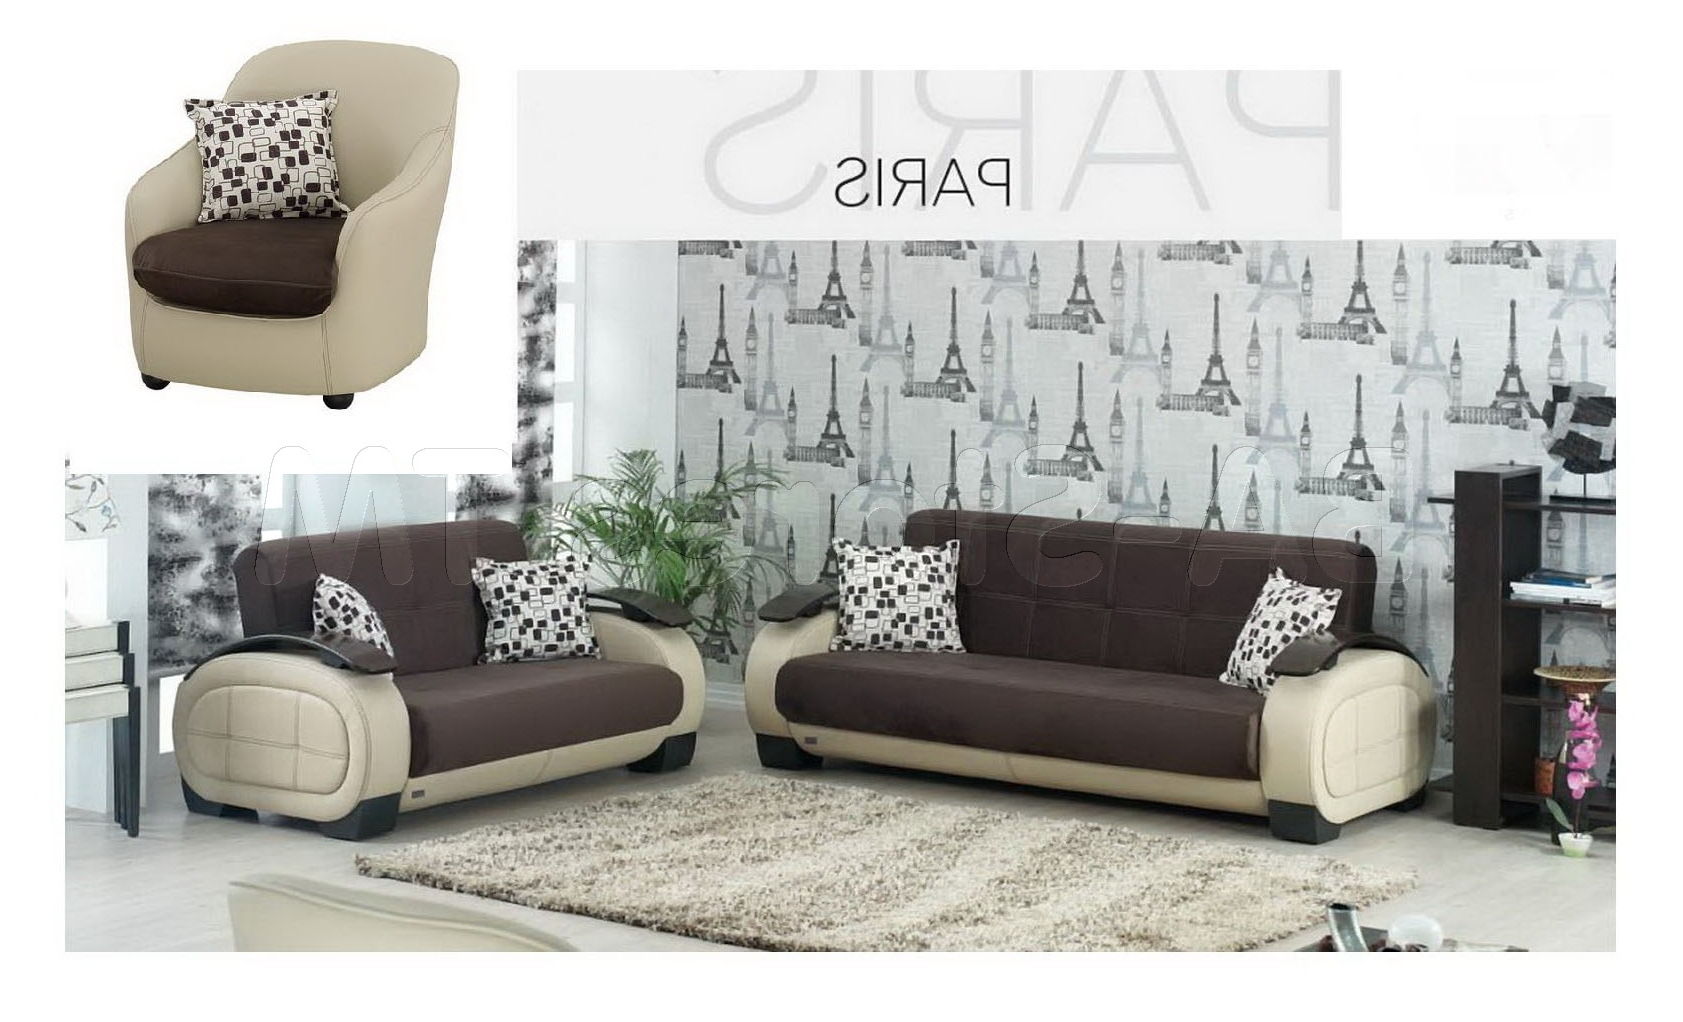 Recent Awesome Sofas And Chairs 21 Office Sofa Ideas With Sofas And Chairs Inside Sofas And Chairs (View 4 of 20)